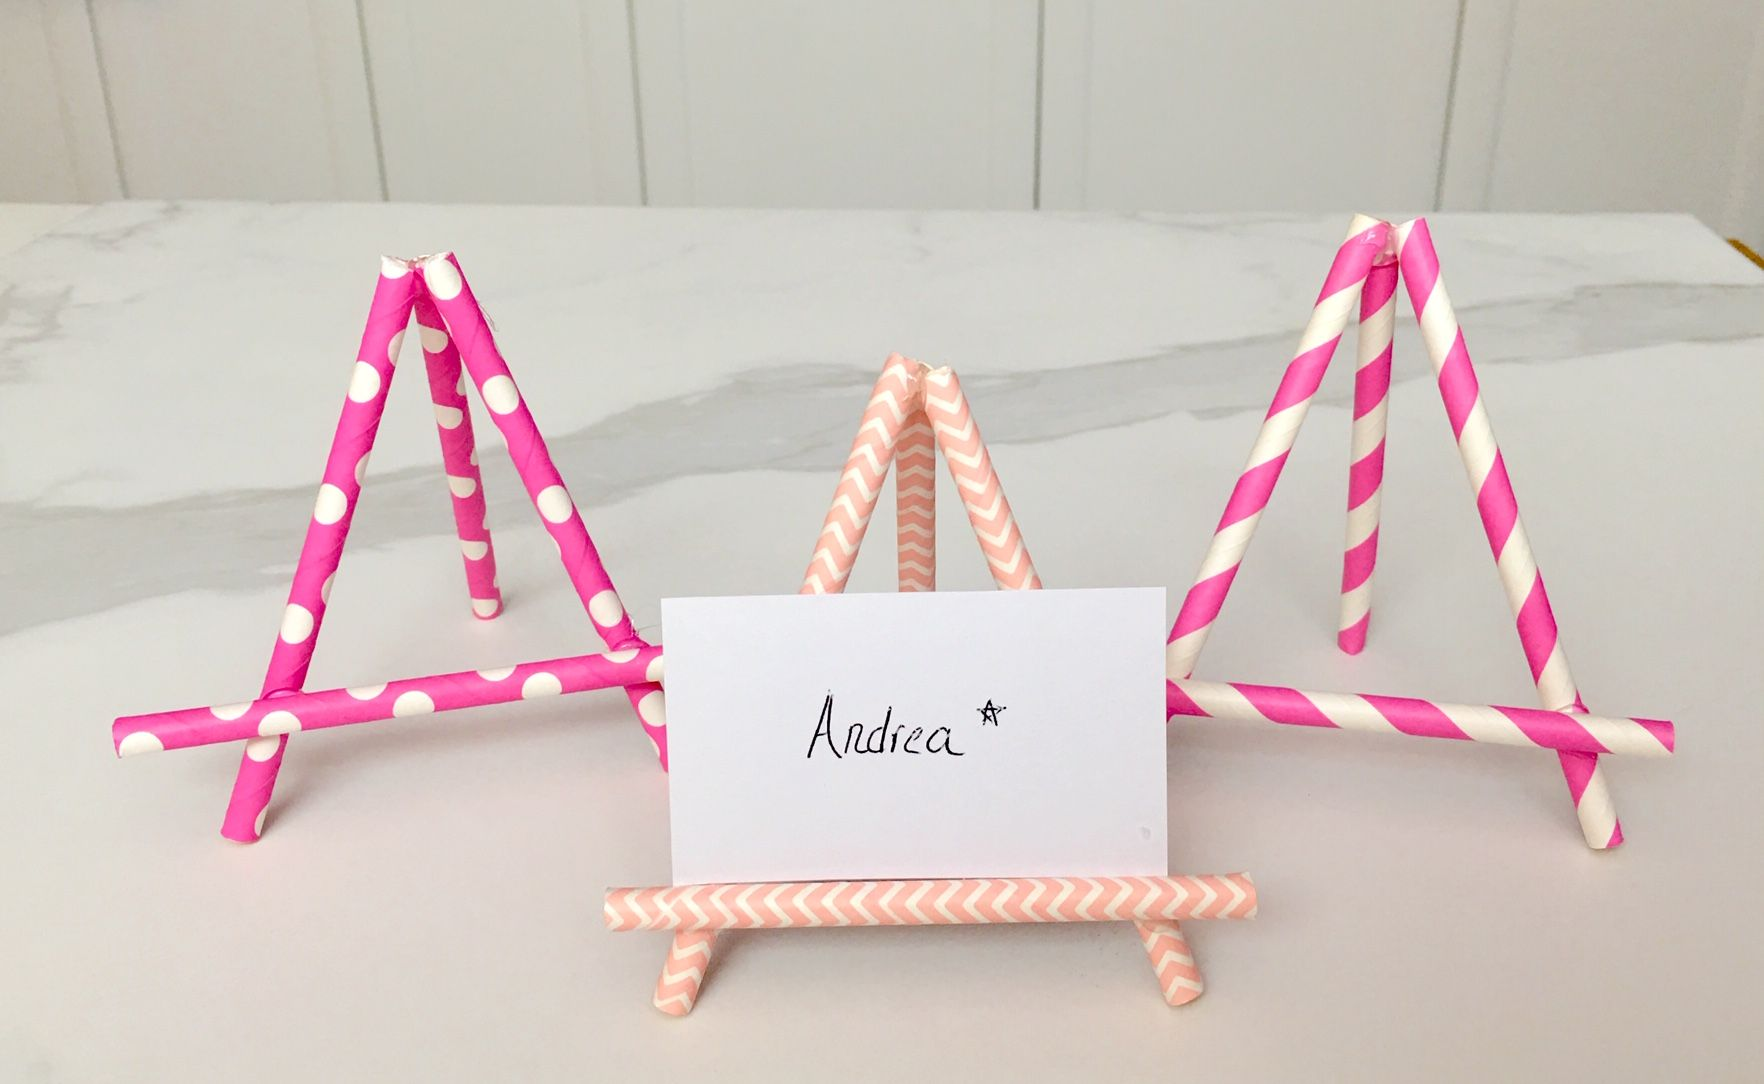 Three pink place card holders made out of paper straws